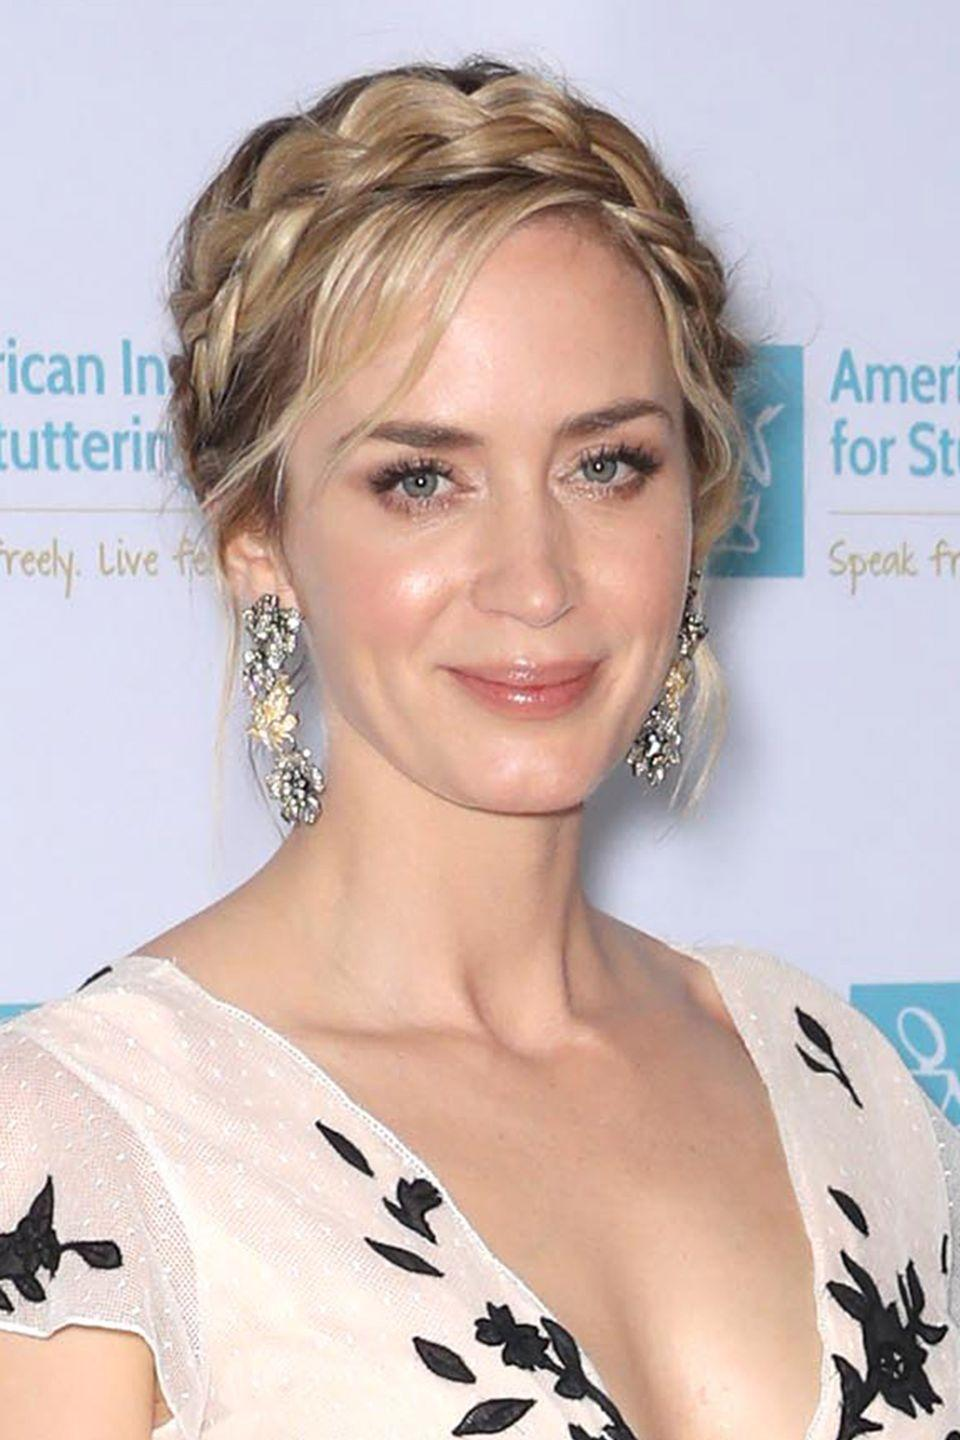 <p>Turn your pigtail plaits into a sophisticated up-do like Emily Blunt, by pinning them on top of each other at the crown of your head.</p>